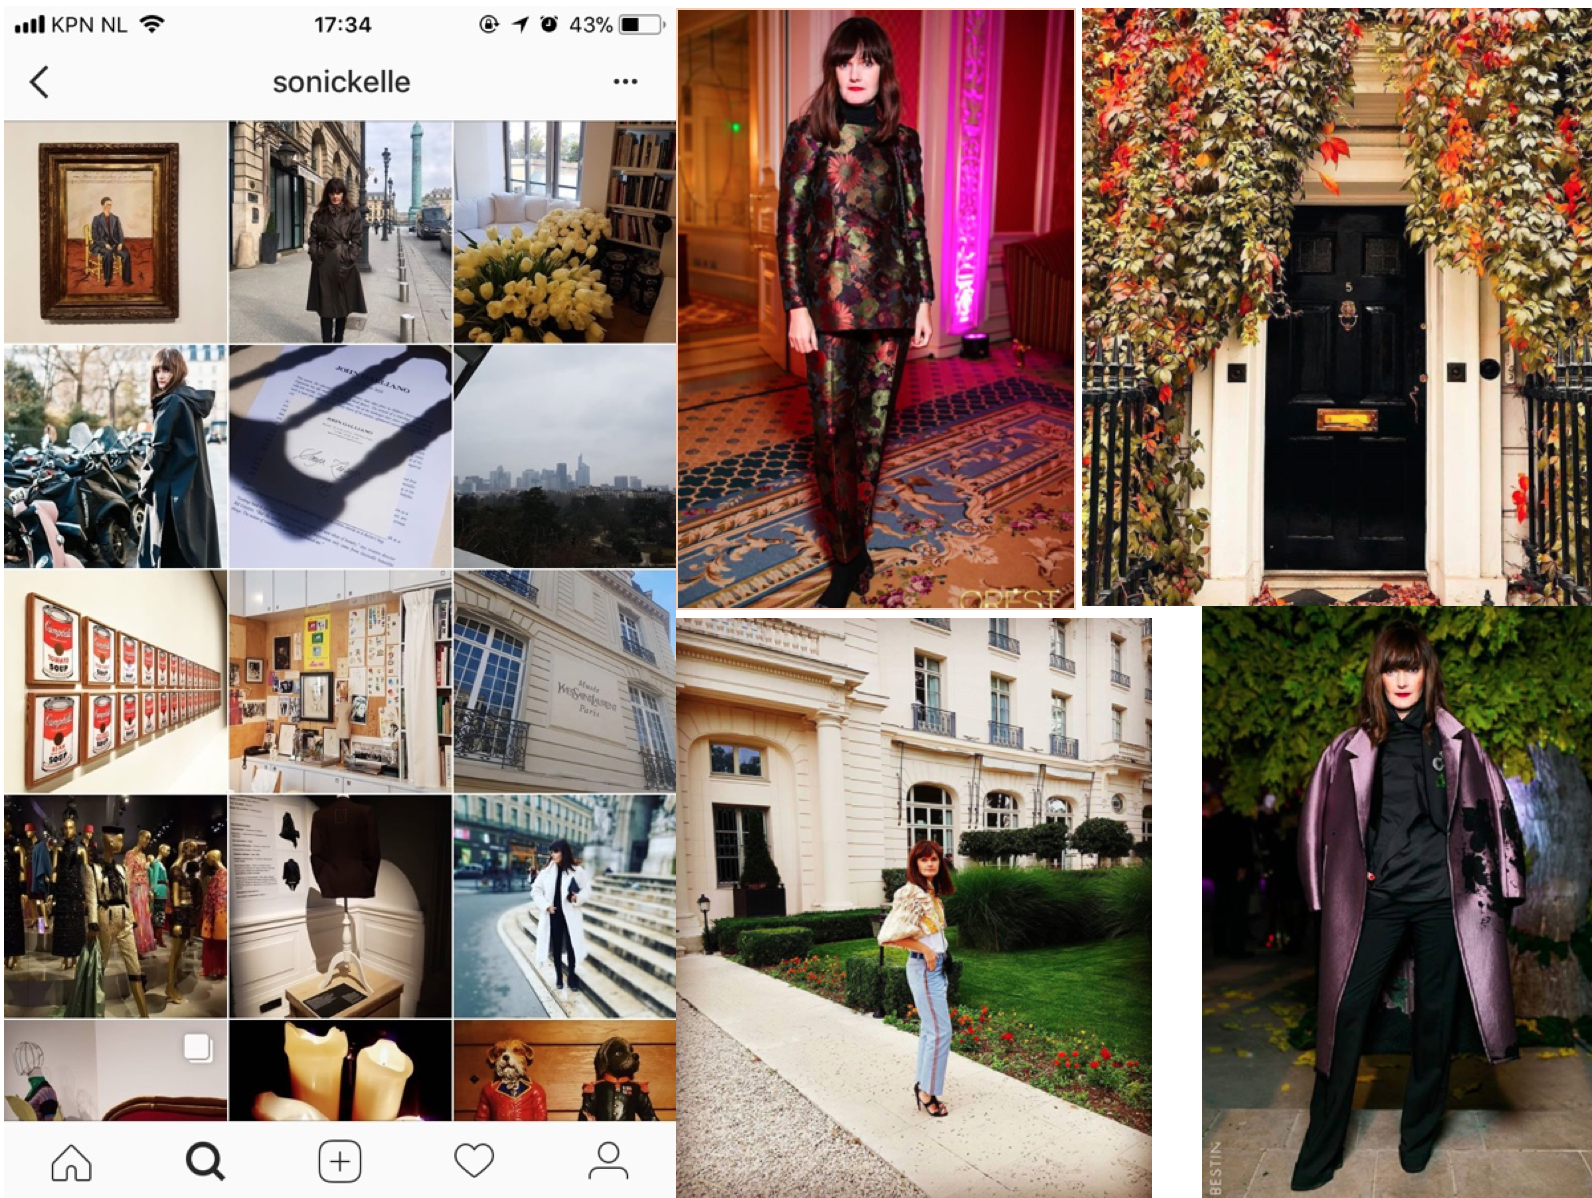 ukraine fashion Instagram account sonickelle